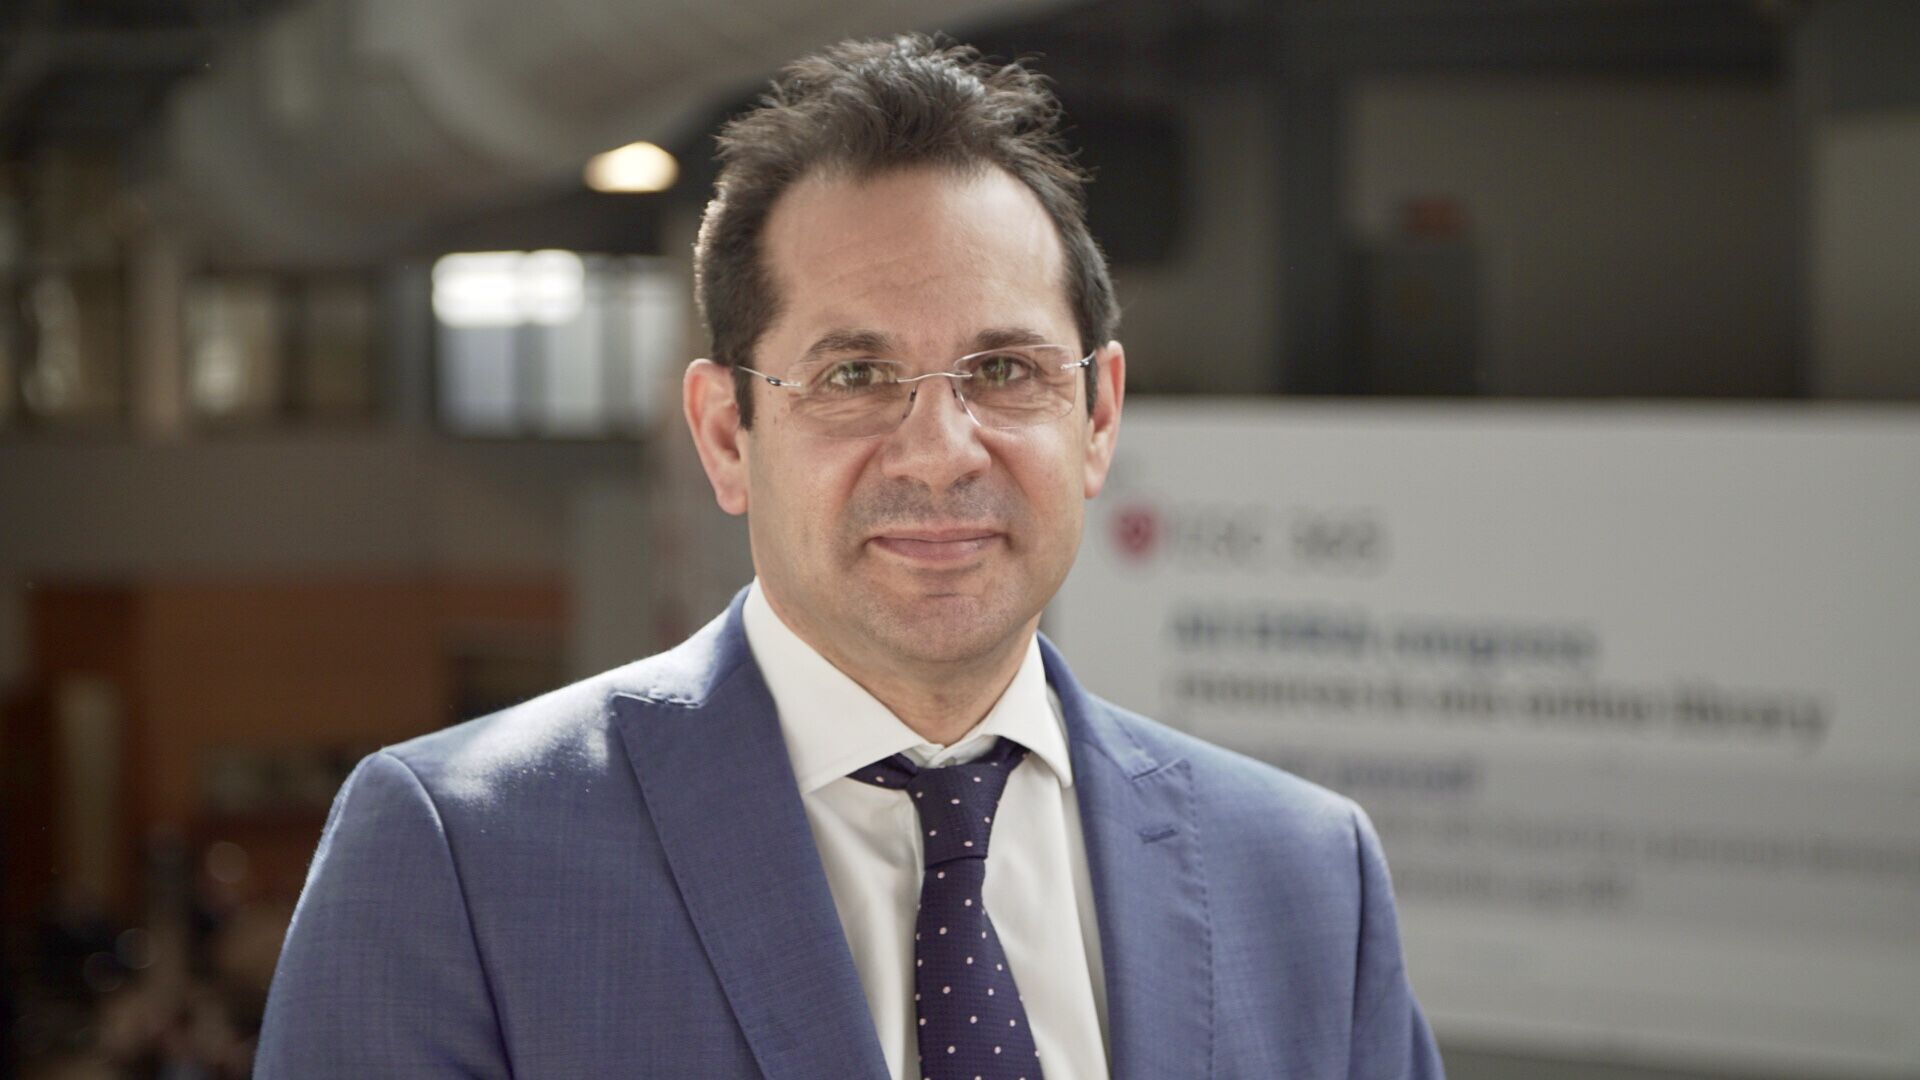 Pier Lambiase, EHRA 2019 – Sudden Death Risk in Non-ischaemic Cardiomyopathy